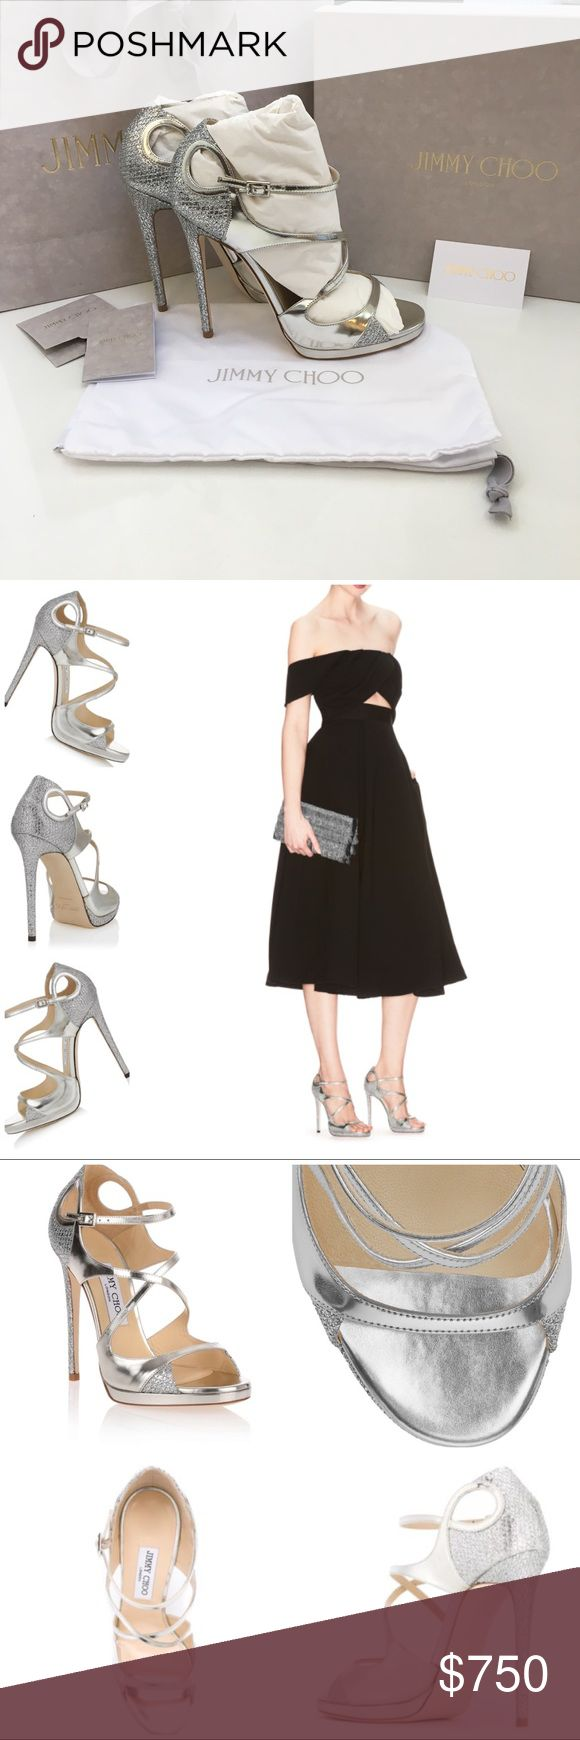 """Jimmy Choo Fancie120 Silver Sandals 39.5 Fancie 120 Silver Glitter Fabric & Mirror Leather Platform Sandals. Item No. FANCIE120GFL_S . Heel Height 120mm/4.7"""" with a 10mm/.4"""" platform. Perfect for a formal event or wedding. Worn Once!!!!! Comes with original dust bag, box, bag, packaging tissue/materials, receipt & information book. Small scuff marks on inner sides (see photos), not noticeable during wear. Sold out online! Jimmy Choo Shoes Heels"""